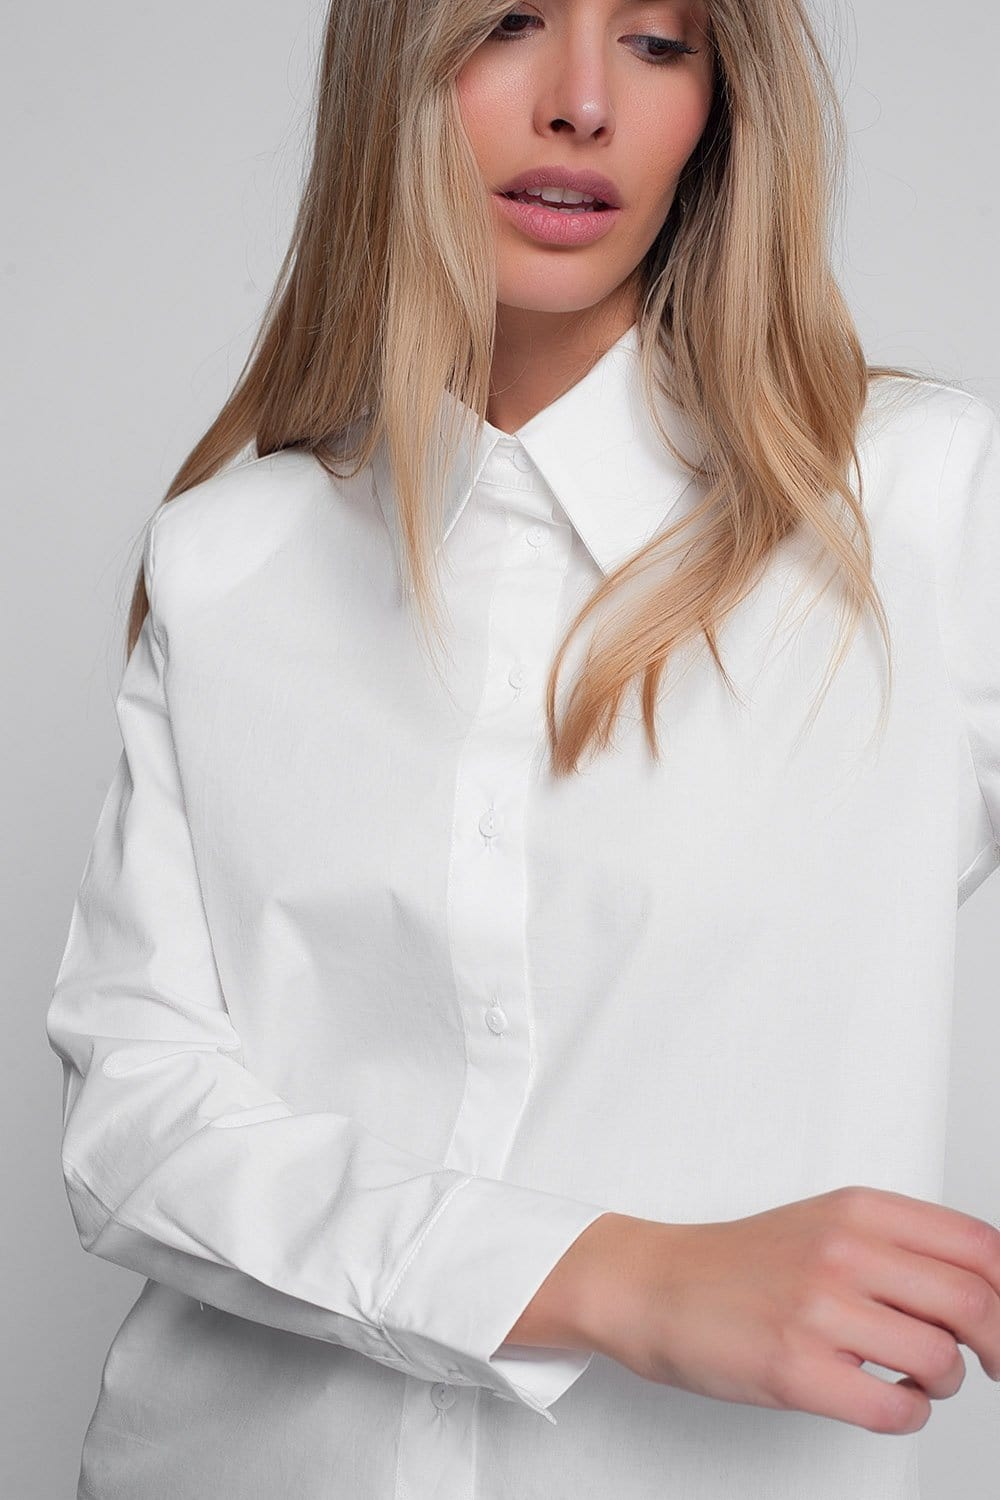 Long Sleeve Shirt with Shoulder Pads in White - Himelhoch's